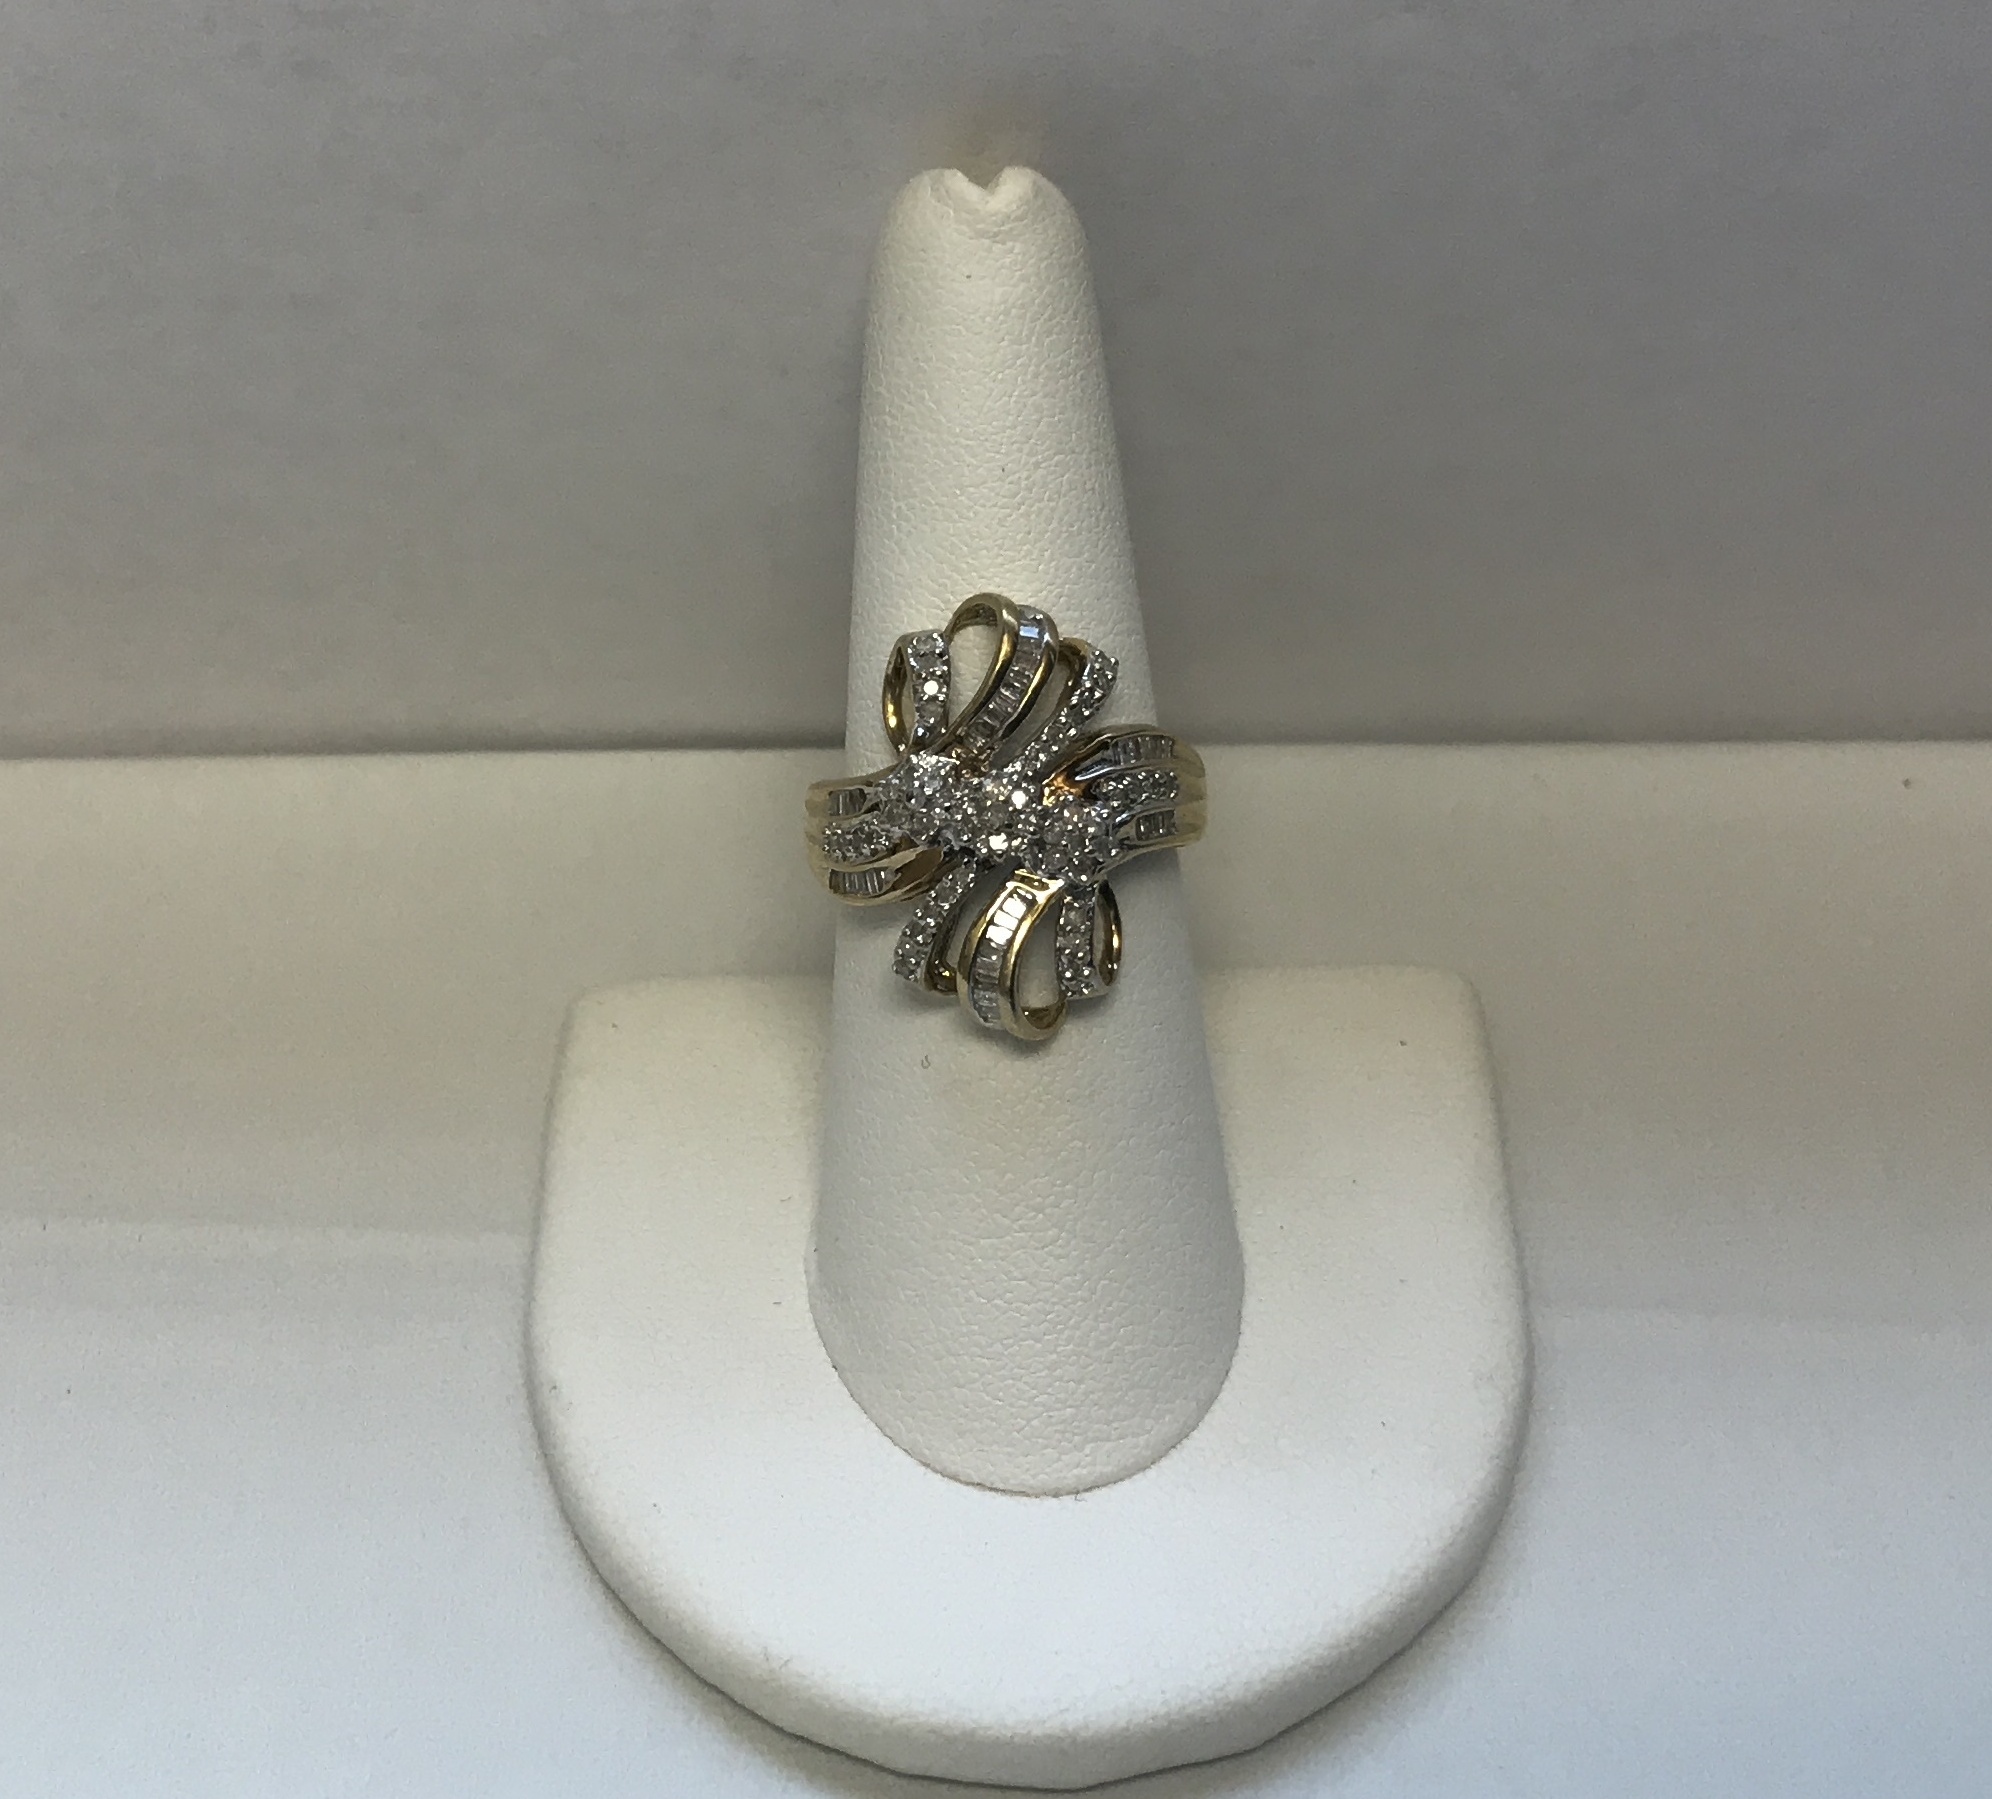 10K Yellow Gold 4.7g Ring with Diamonds